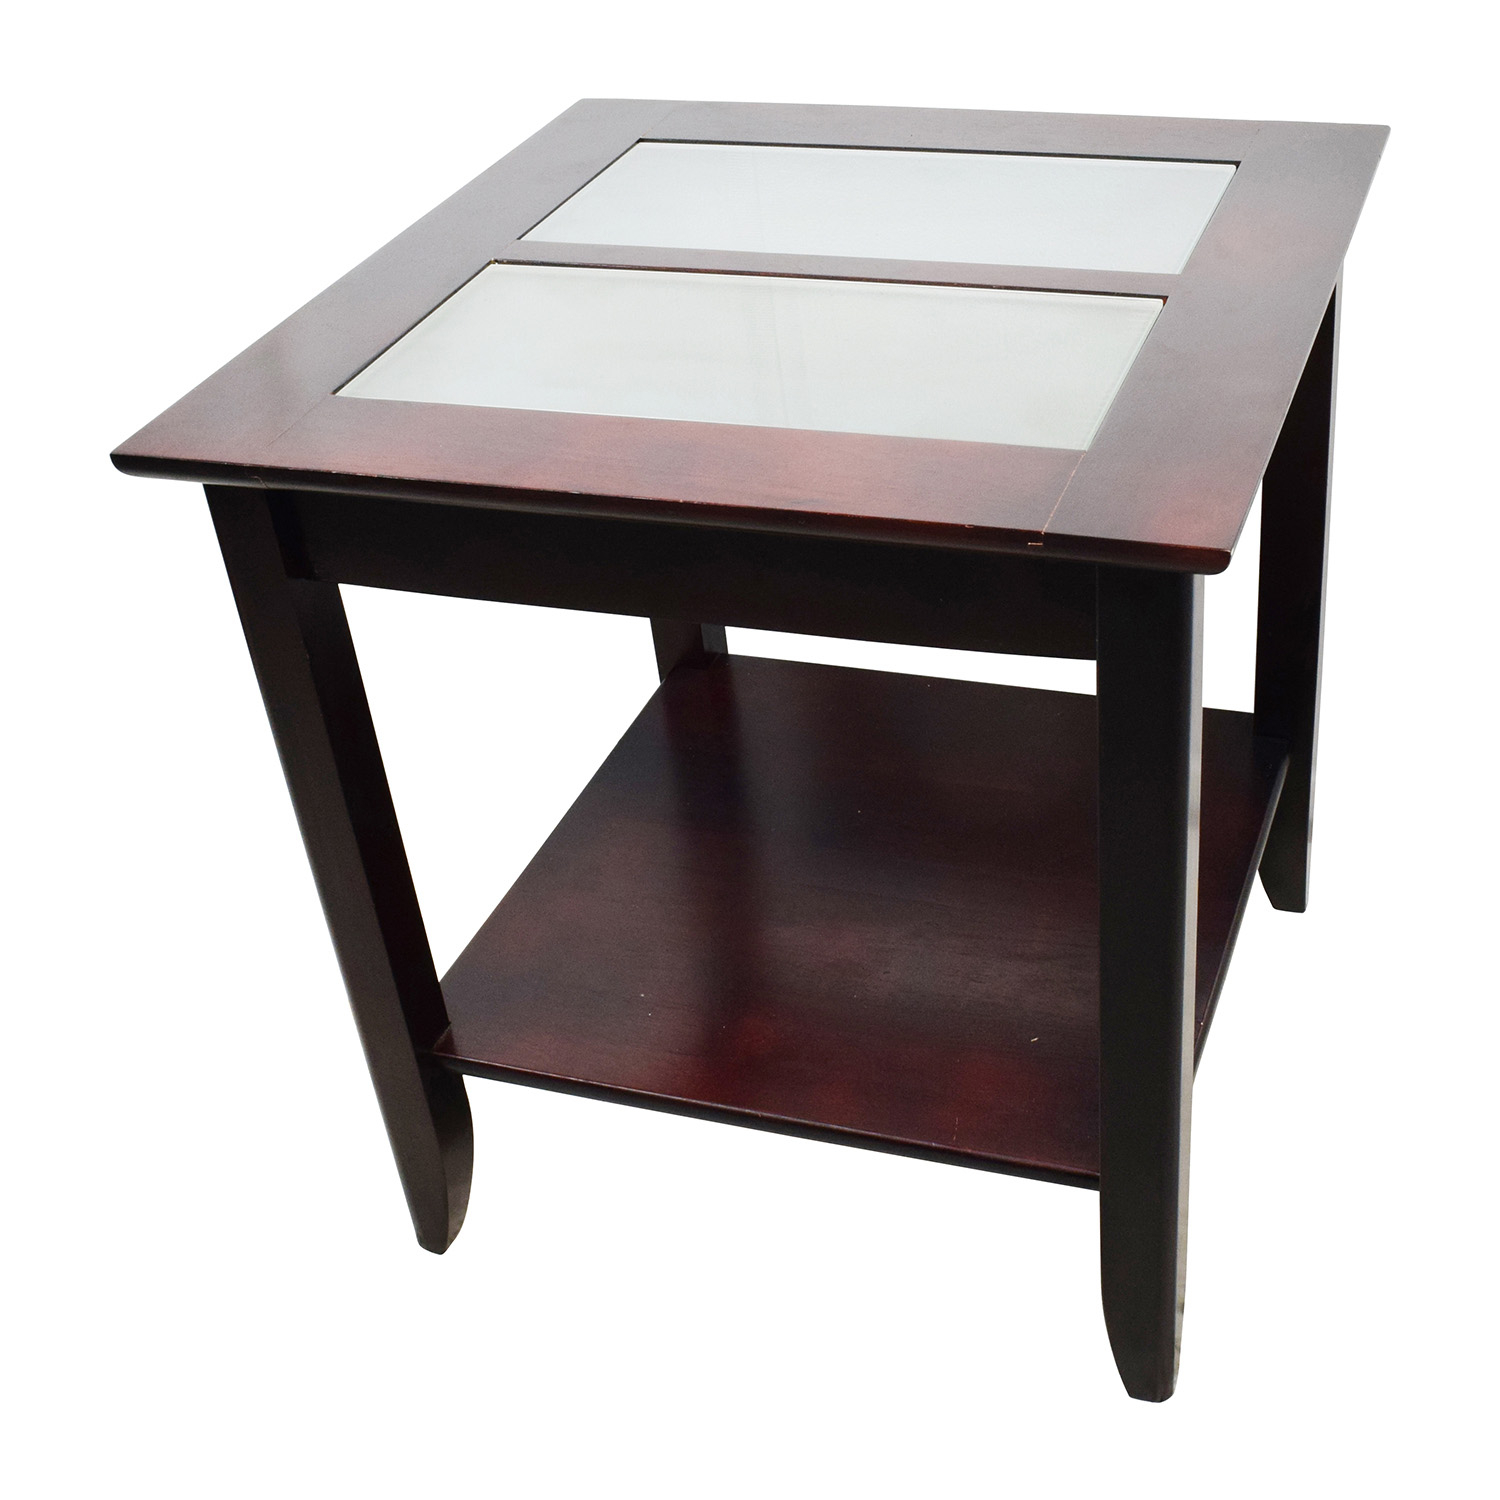 85 off target target glass and wood coffee table tables Coffee tables glass